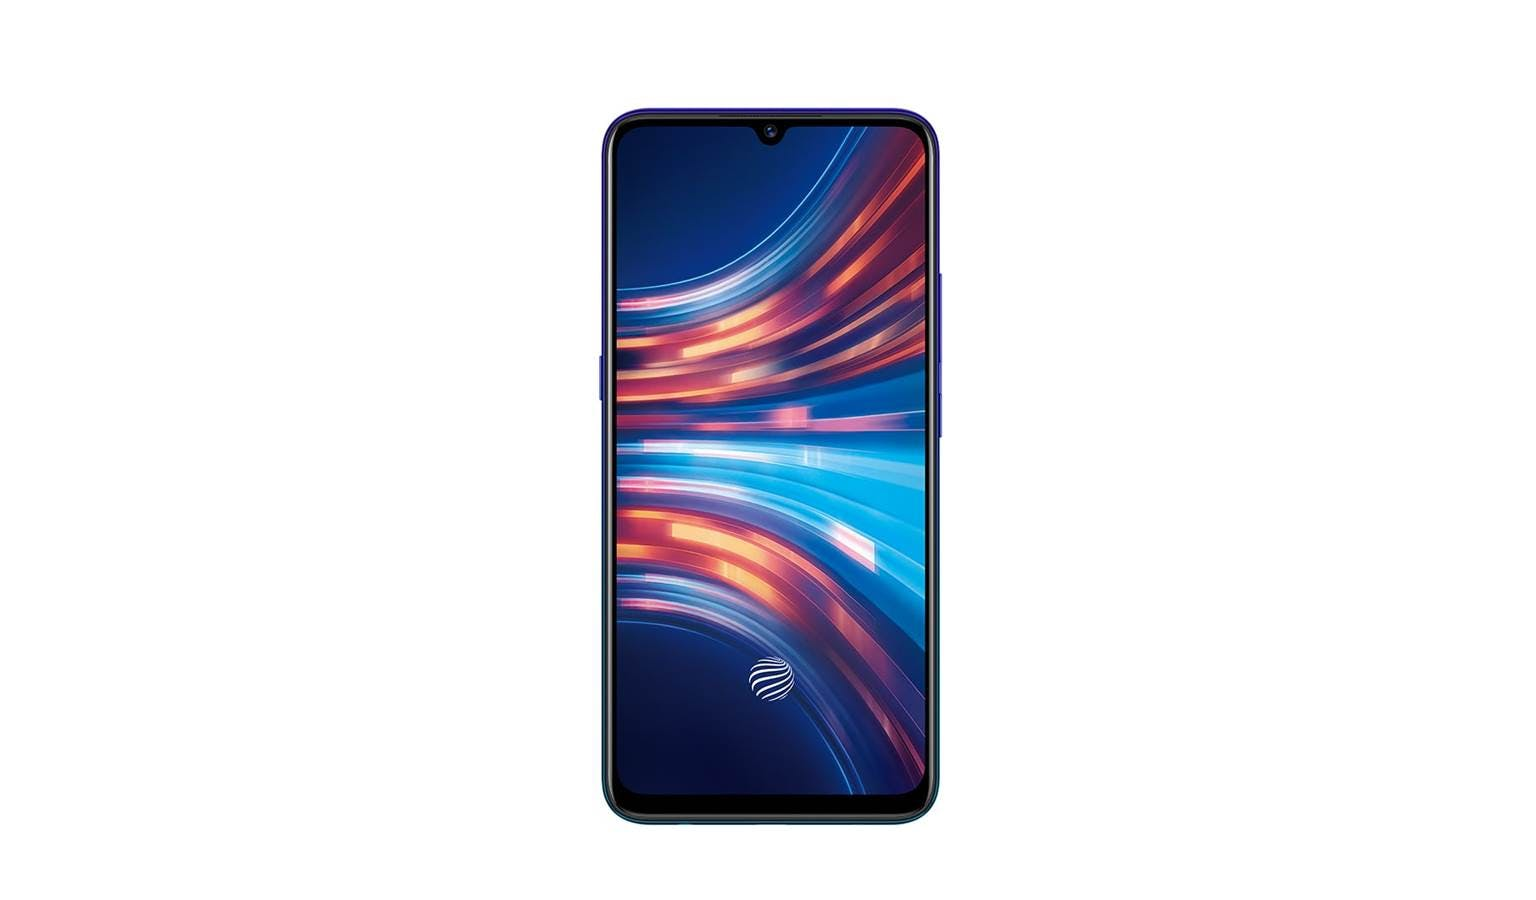 Vivo S1 6 38-inch 128GB Smartphone - Diamond Black